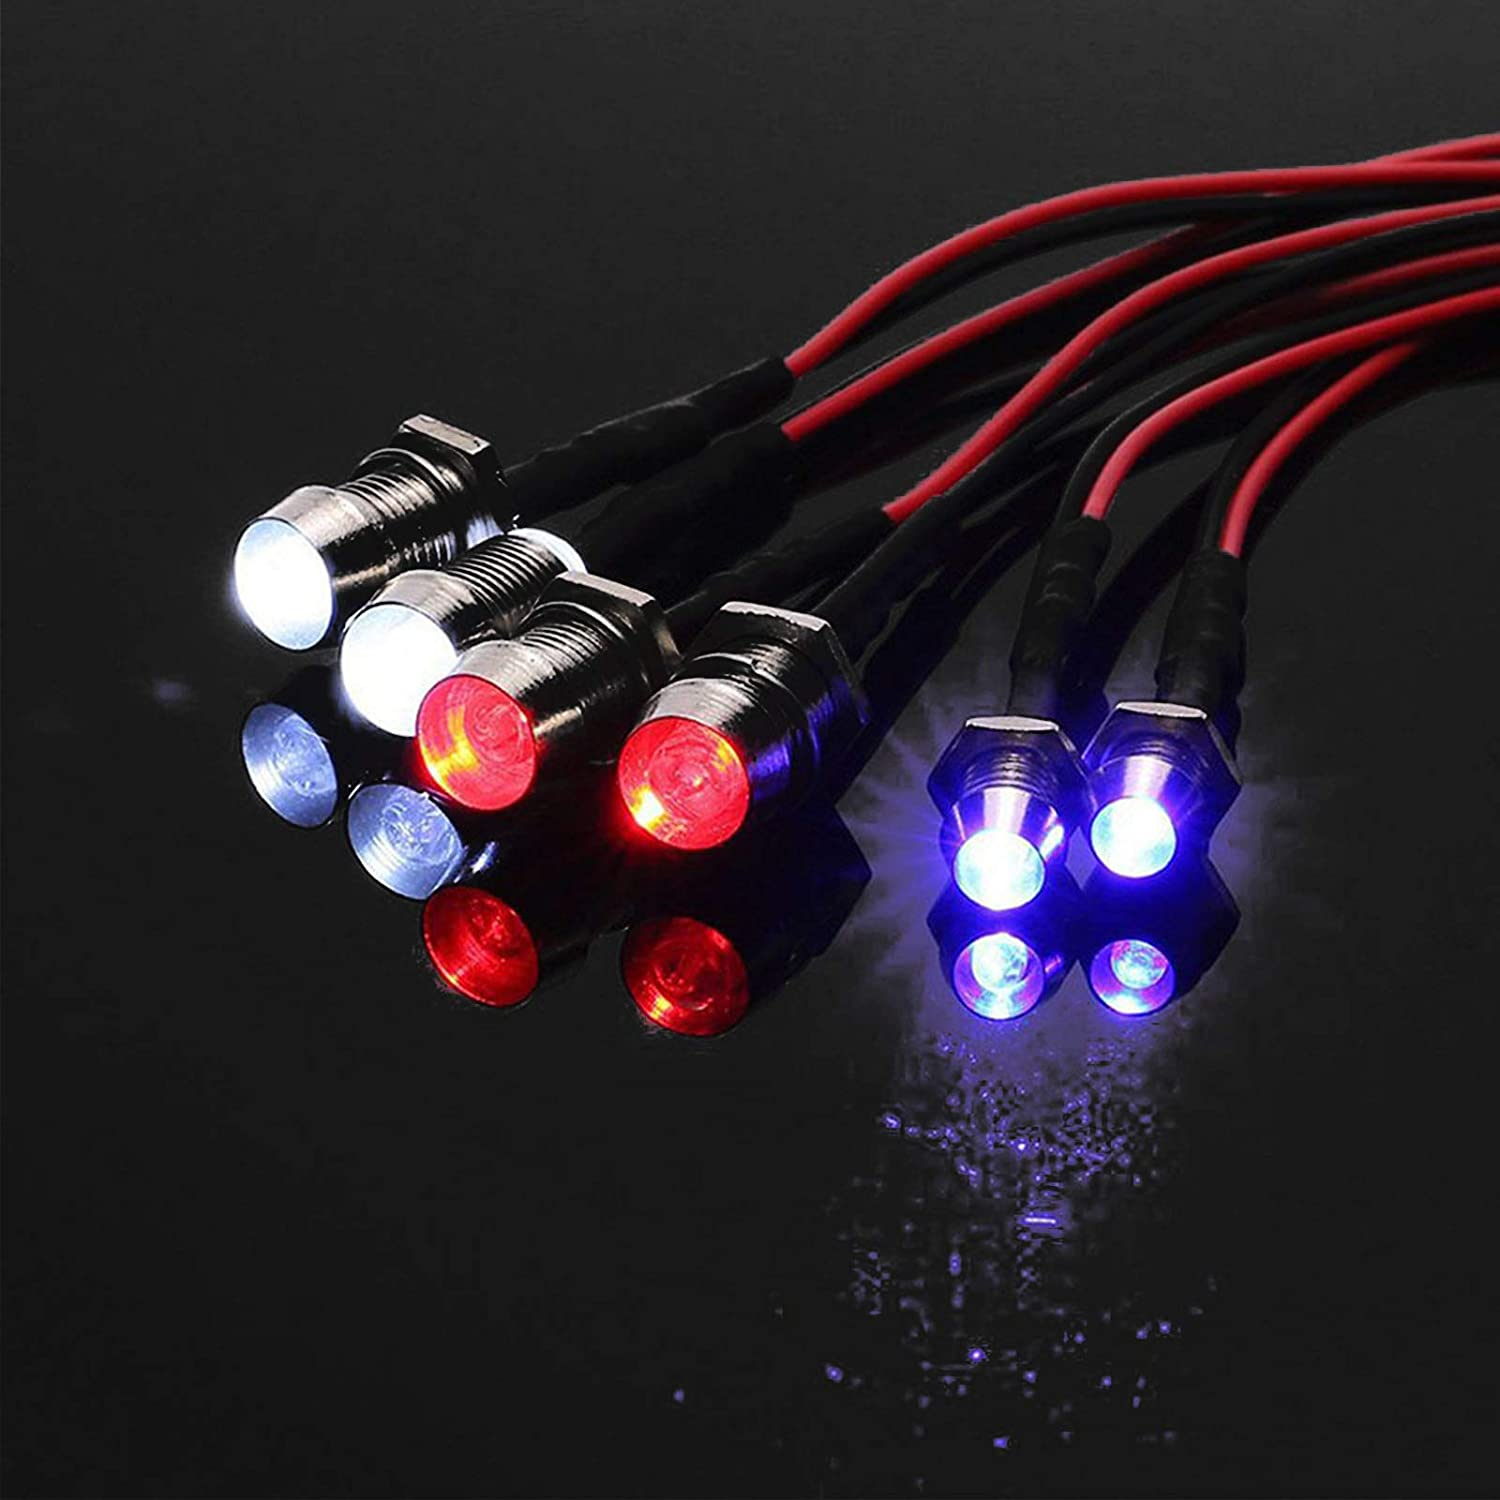 8 LED Headlamp Tail-light Set RC Car Parts for TRAXXAS HSP HPI REDCAT Axial $S1